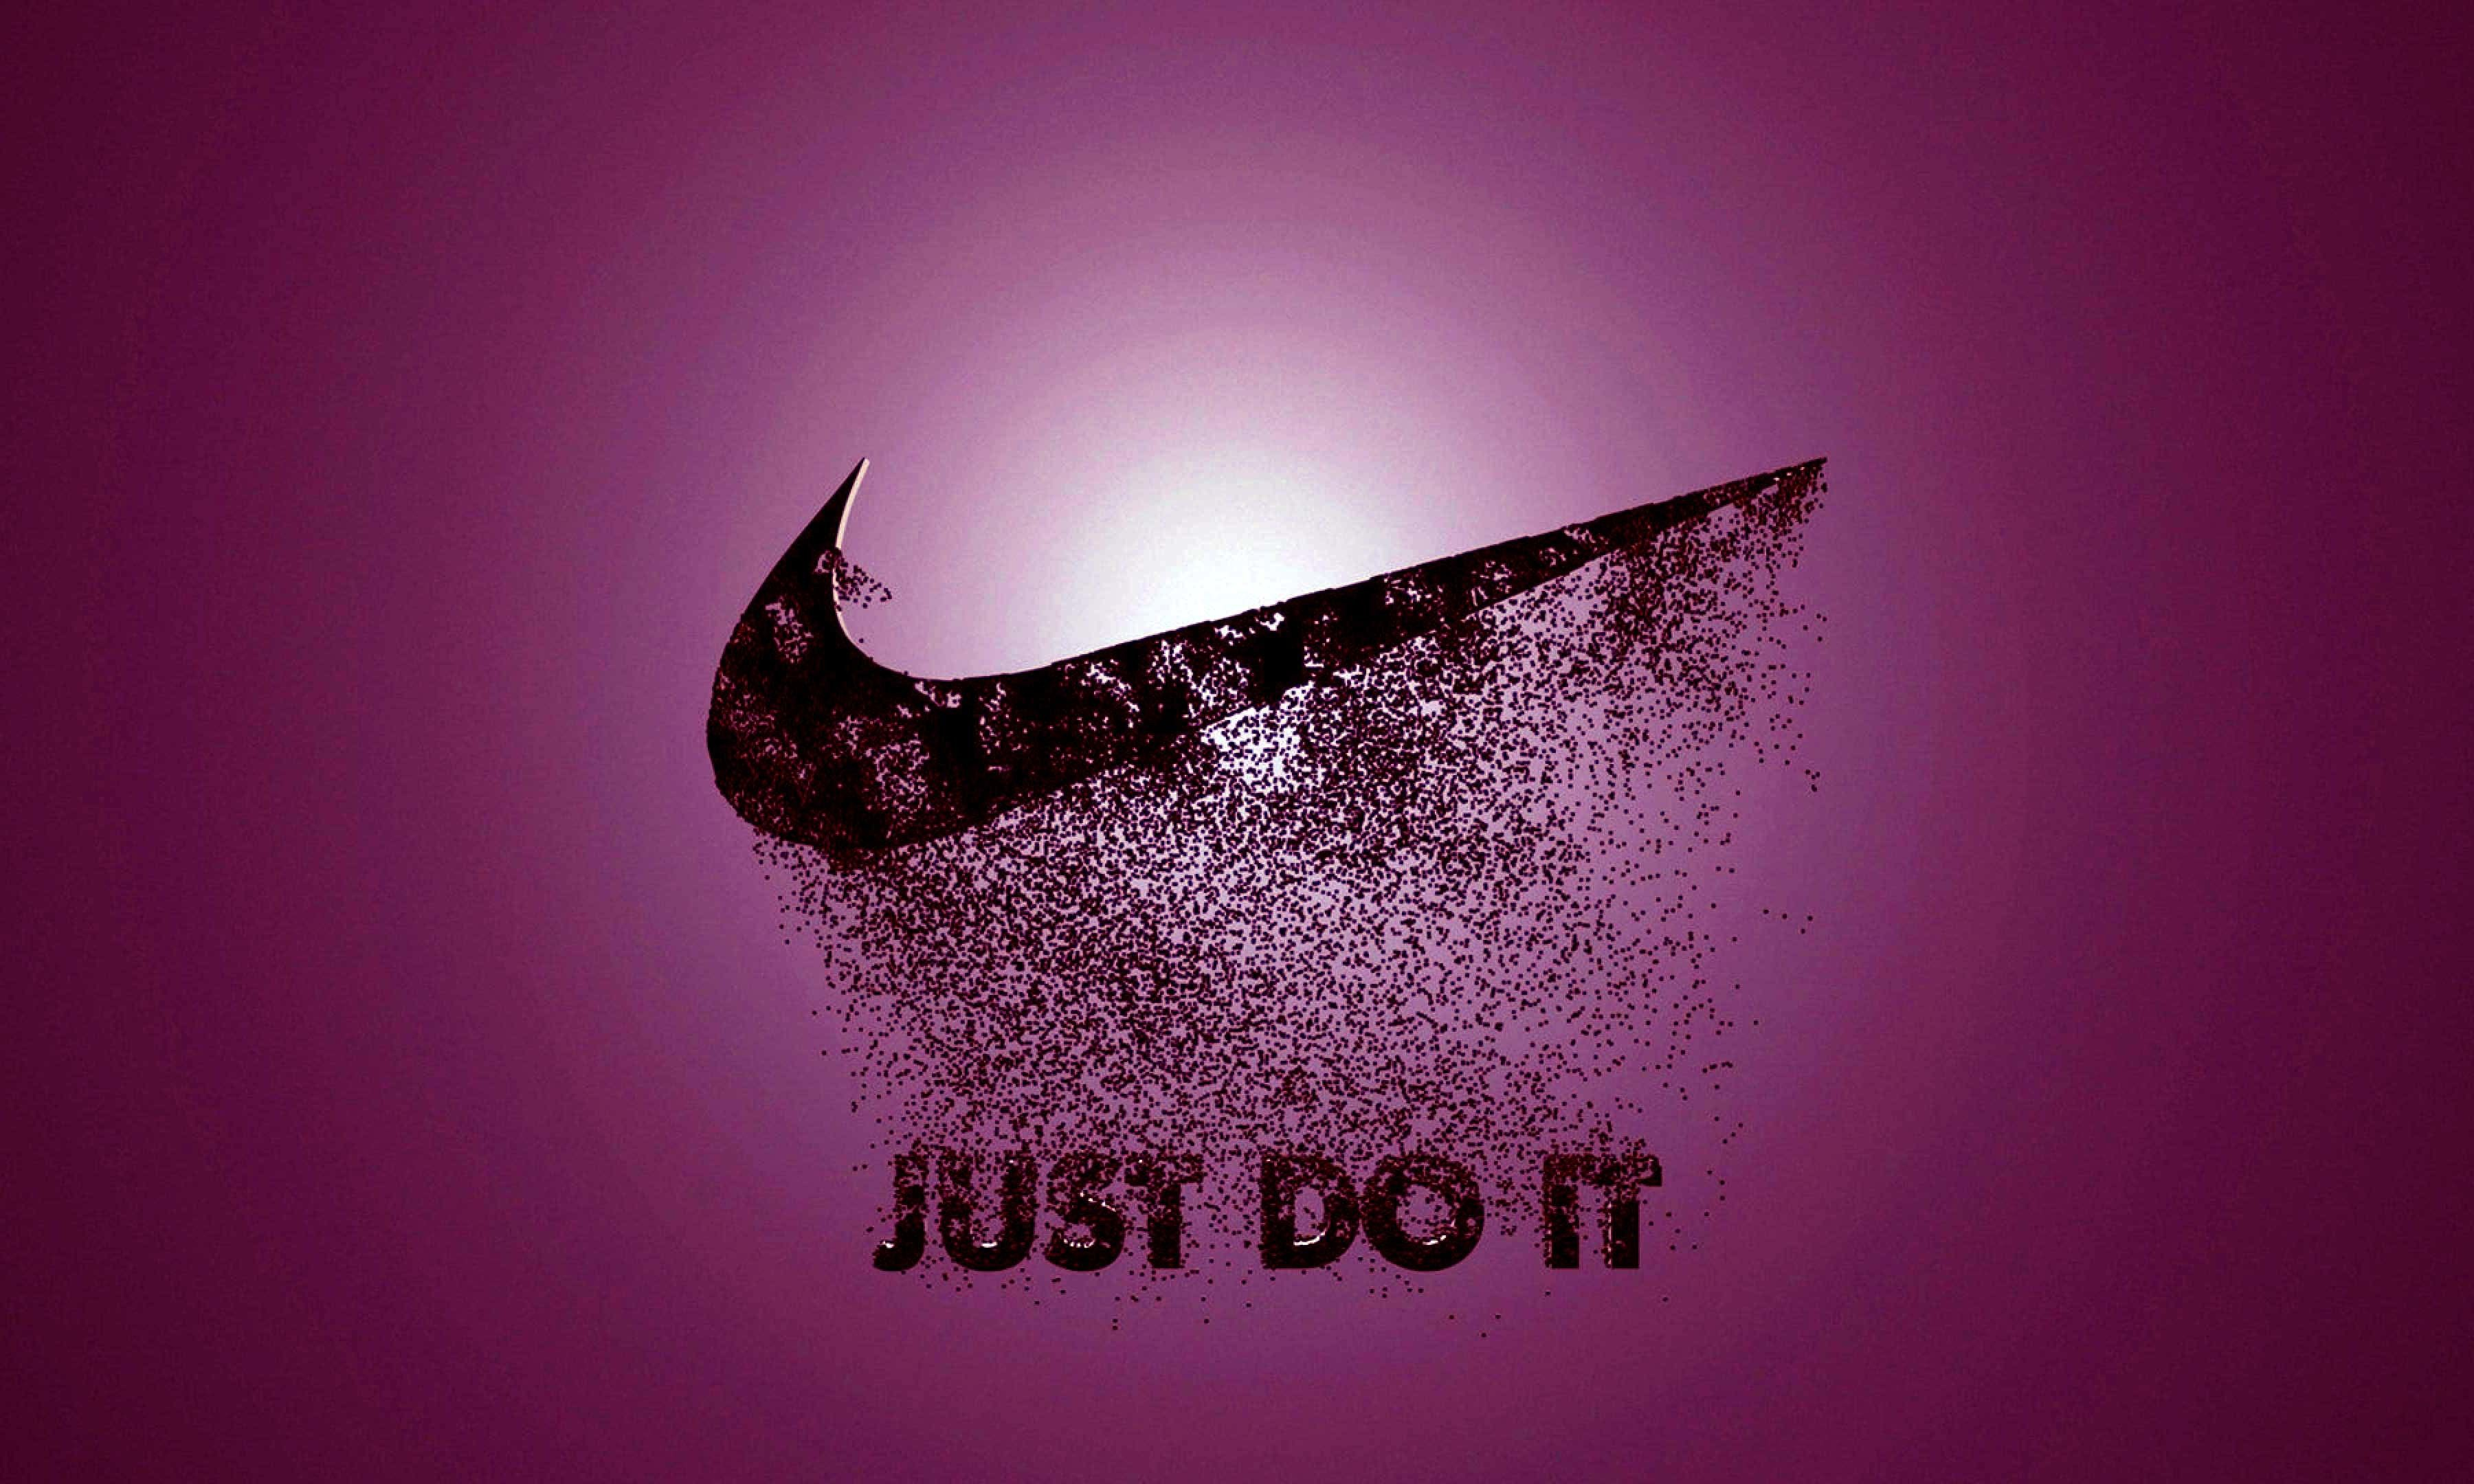 Nike Just Do It Wallpaper Wide Click Wallpapers Just Do It Wallpapers Nike Wallpaper Just Do It